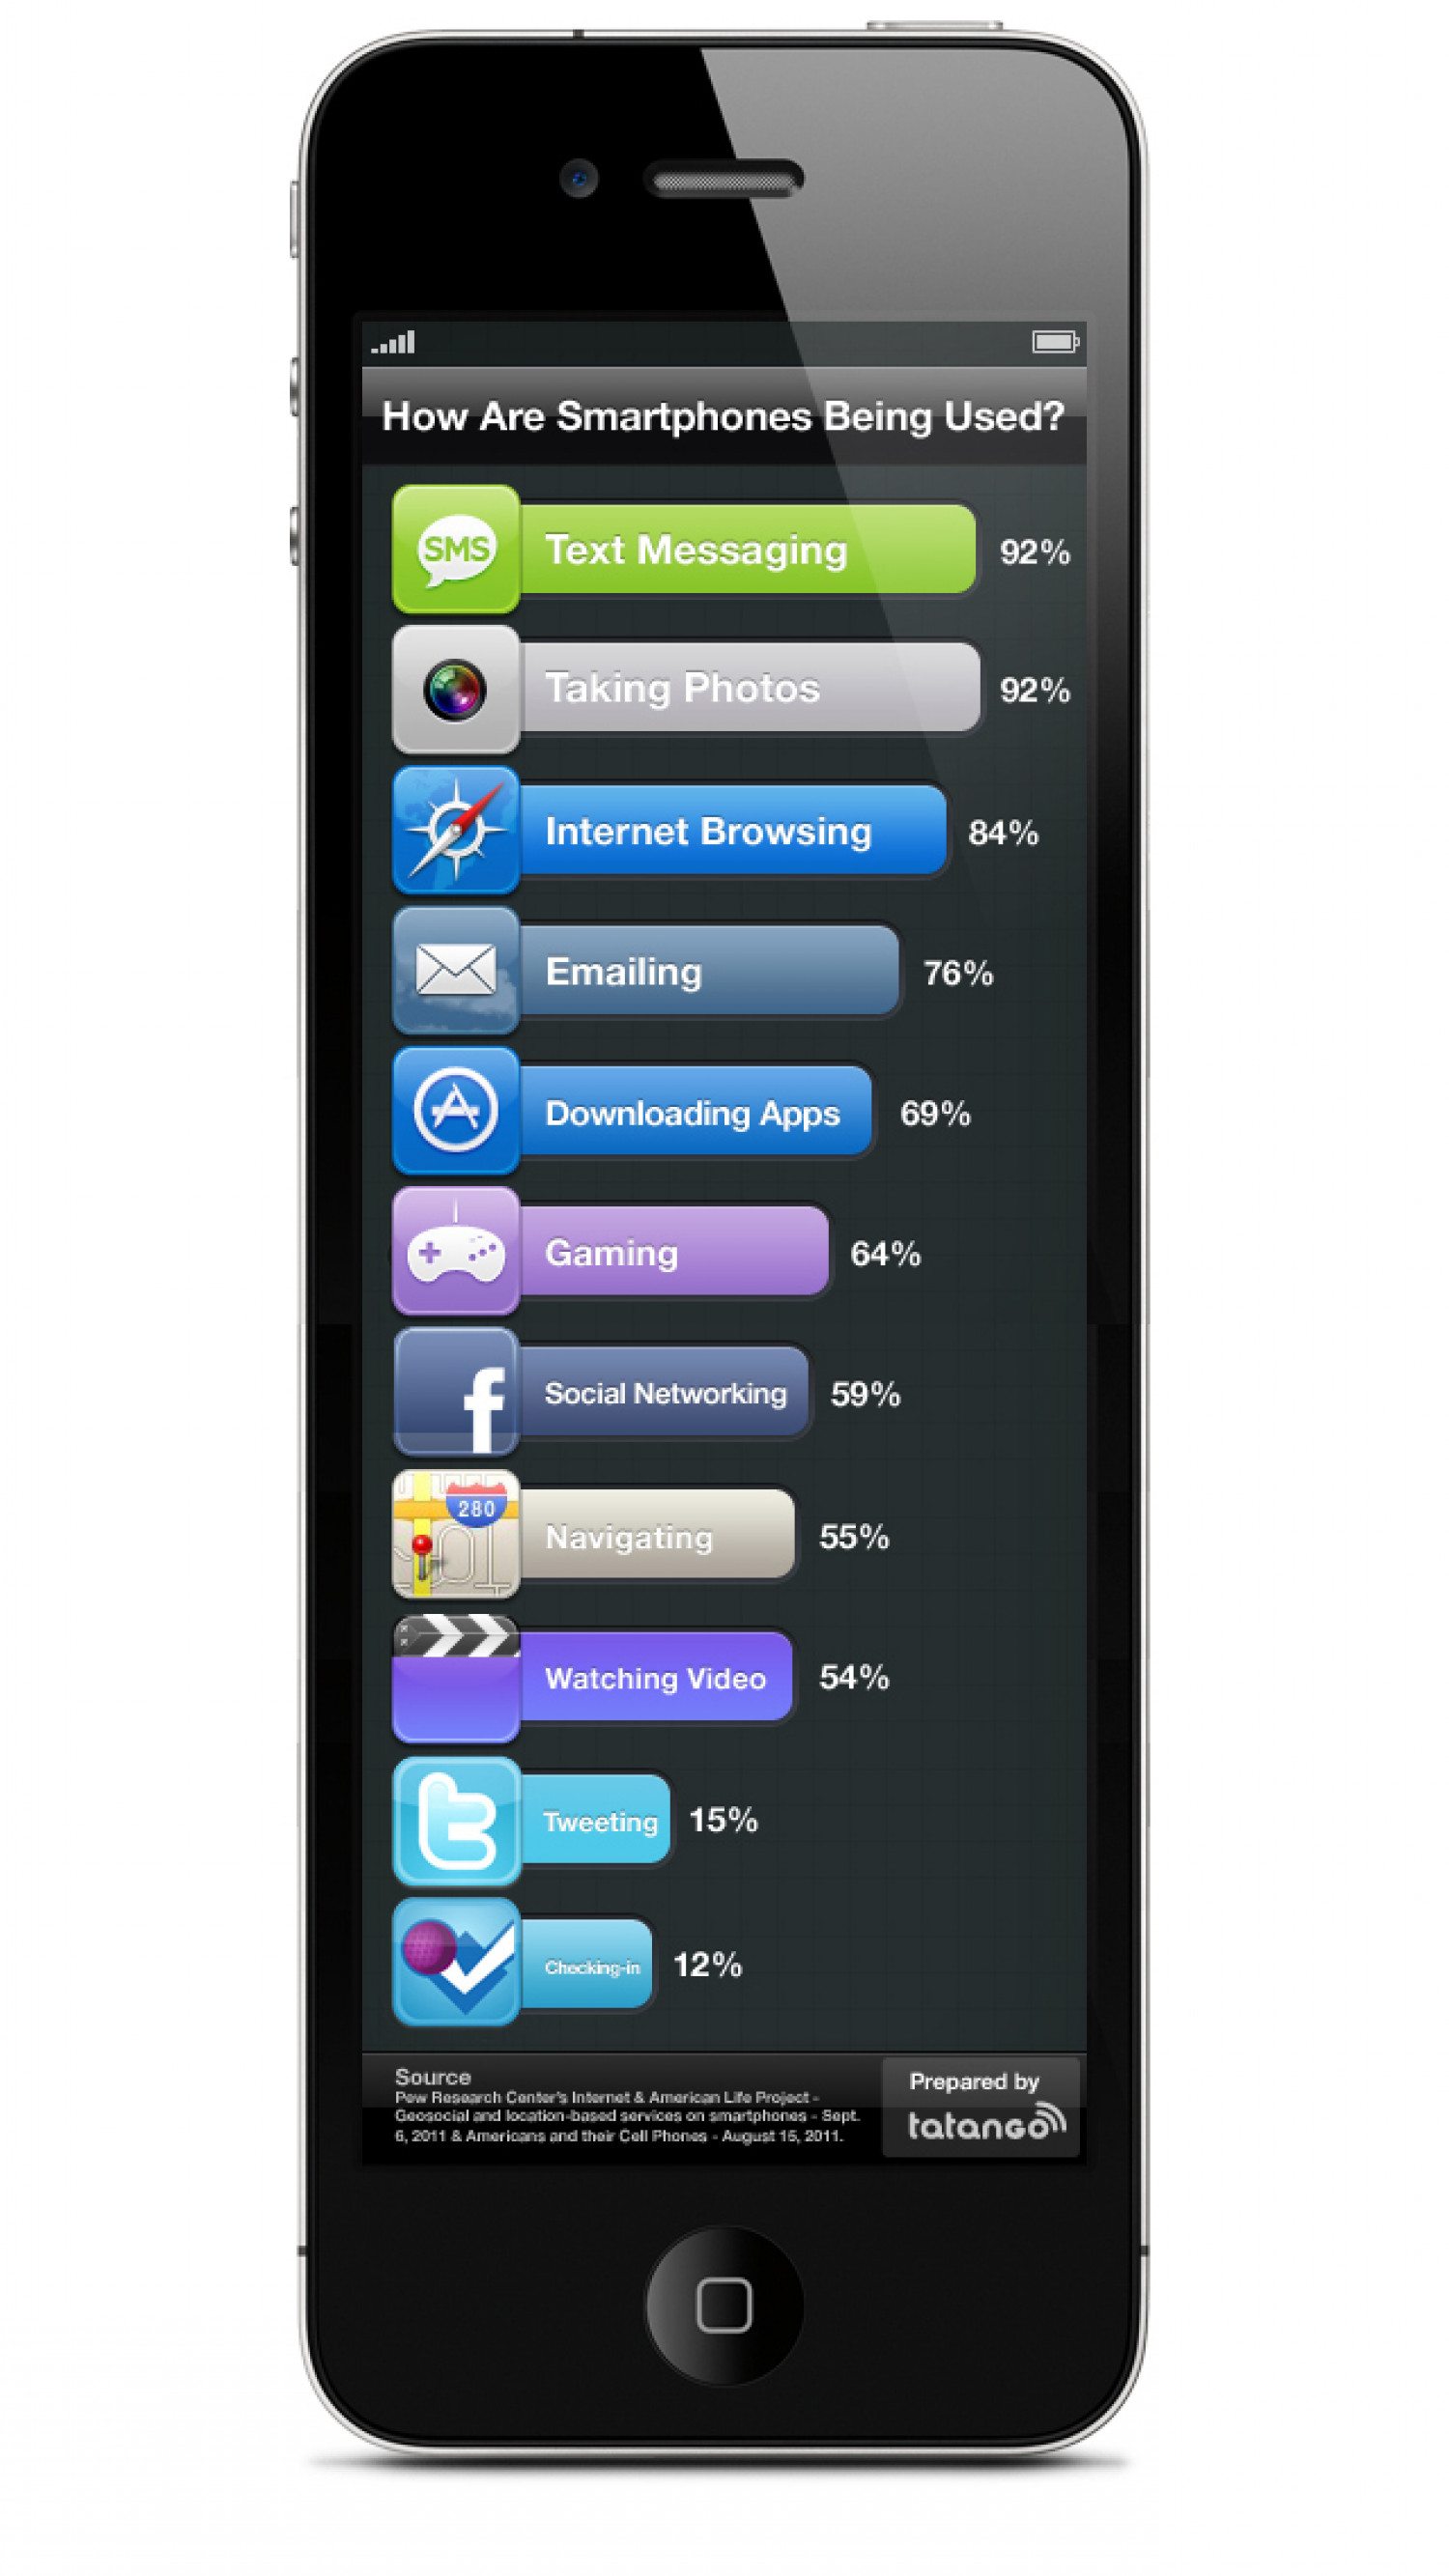 How Are Smartphones Being Used? Infographic